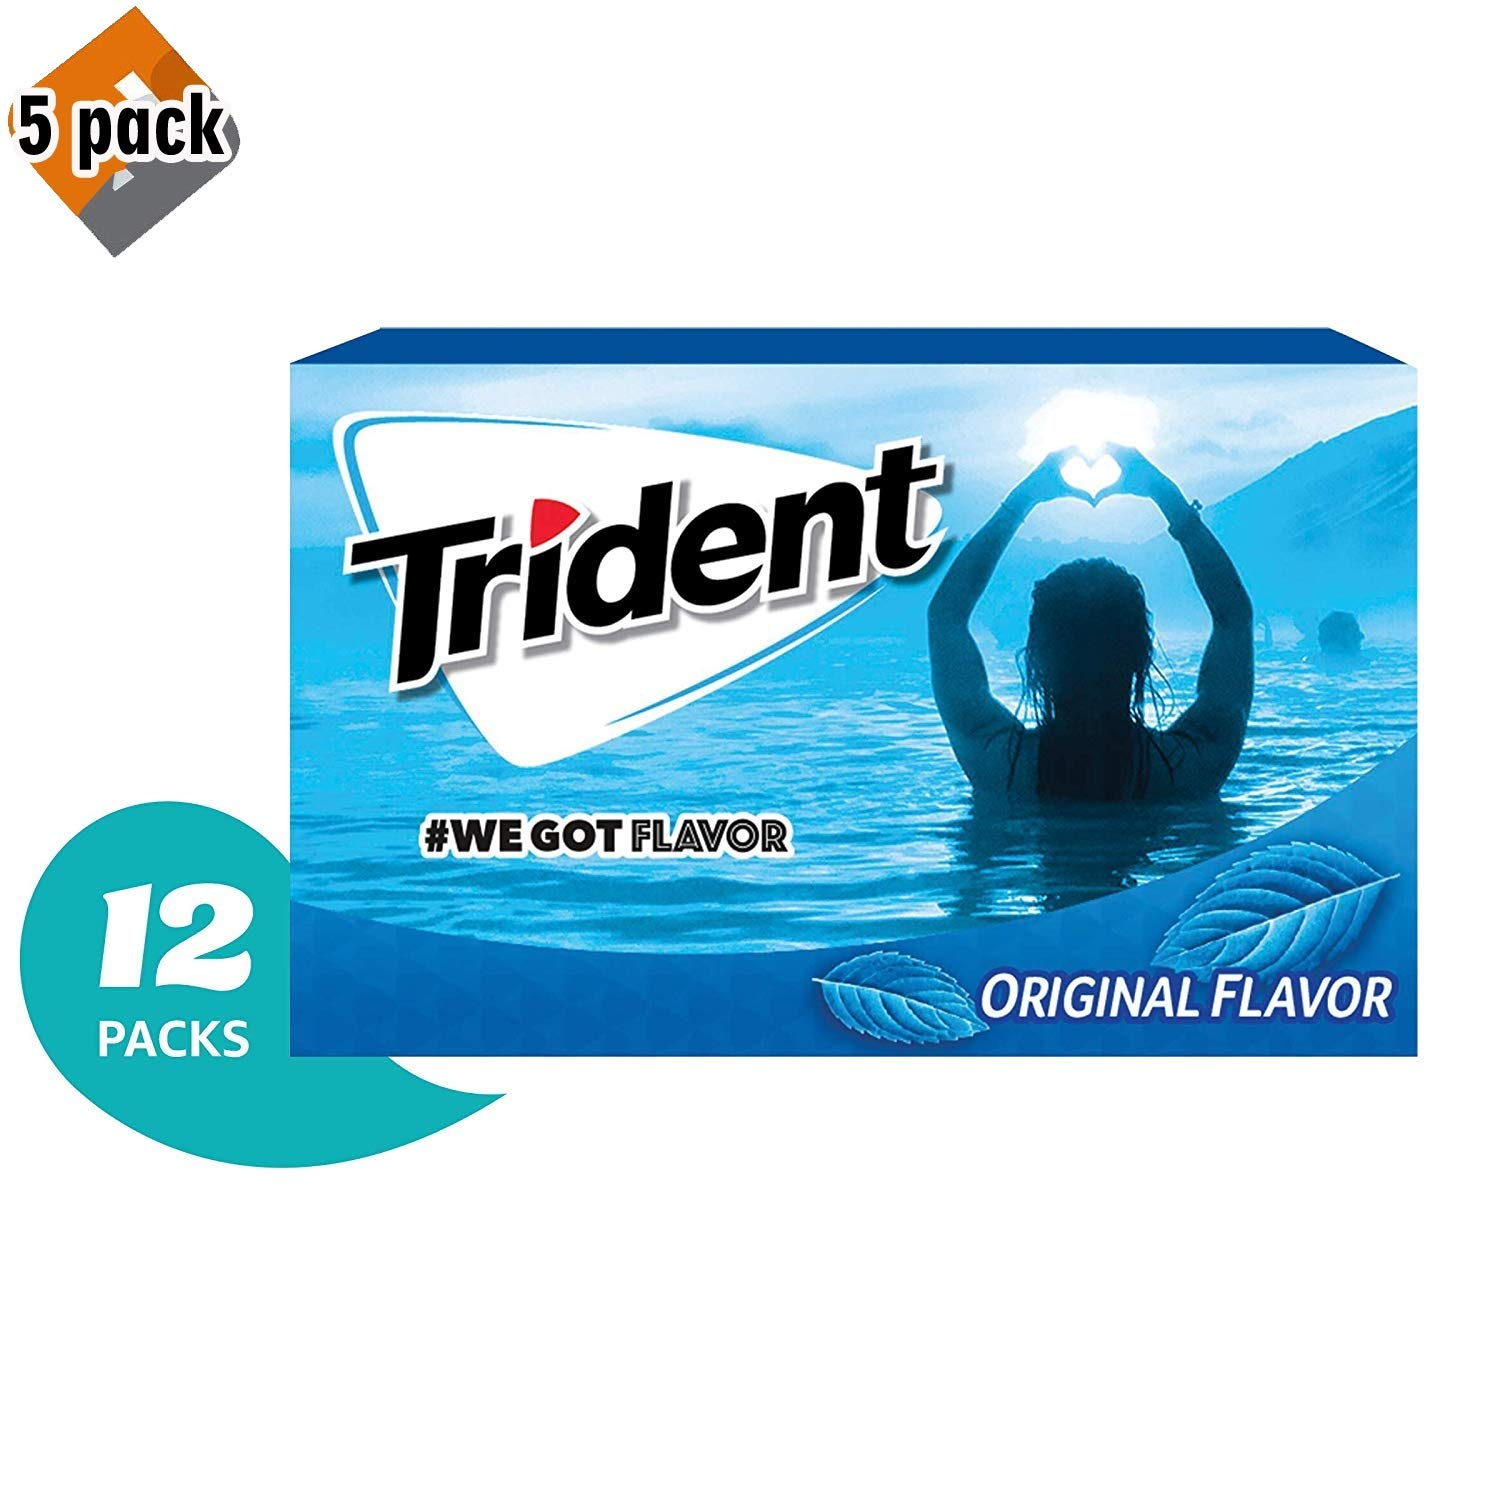 Trident Original Flavor Sugar Free Gum - with Xylitol - 12 Packs (168 Pieces Total) - Pack 5 by Trident